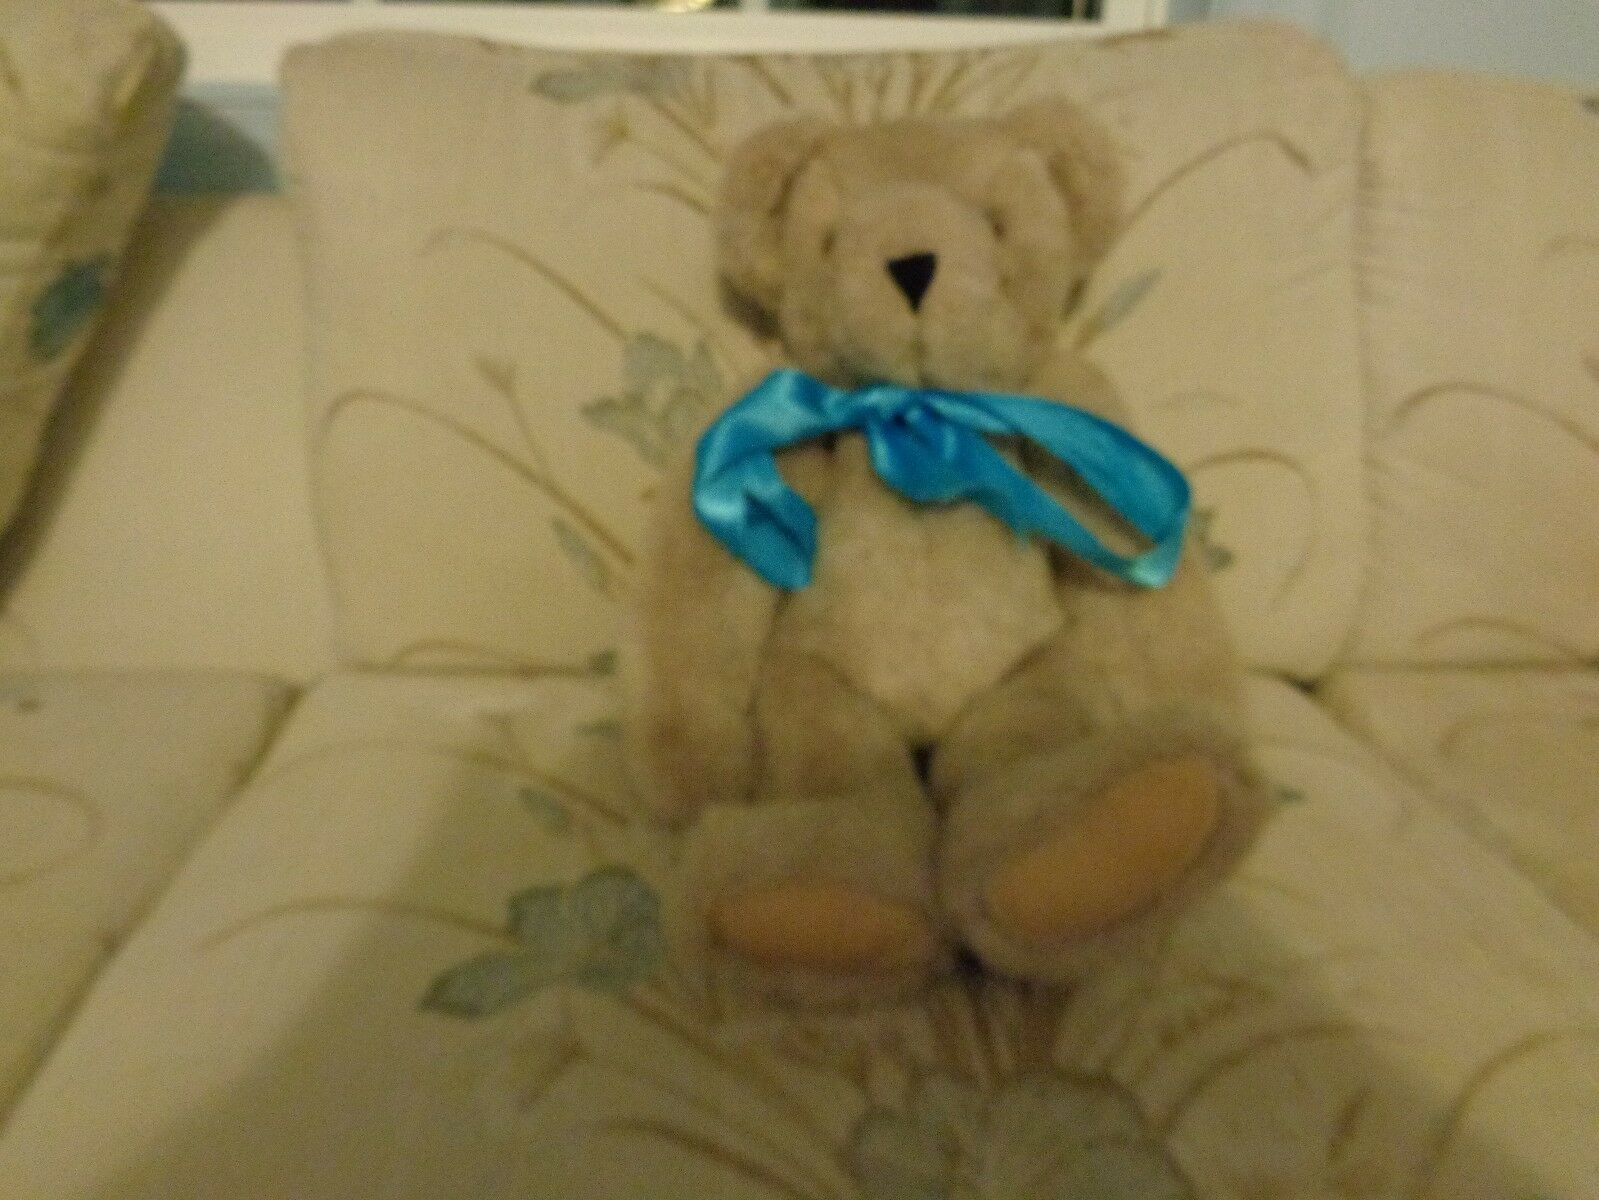 VINTAGE 1984 VERMONT TEDDY BEAR PLUSH DOLL FIGURE JOINTED MADE IN THE USA